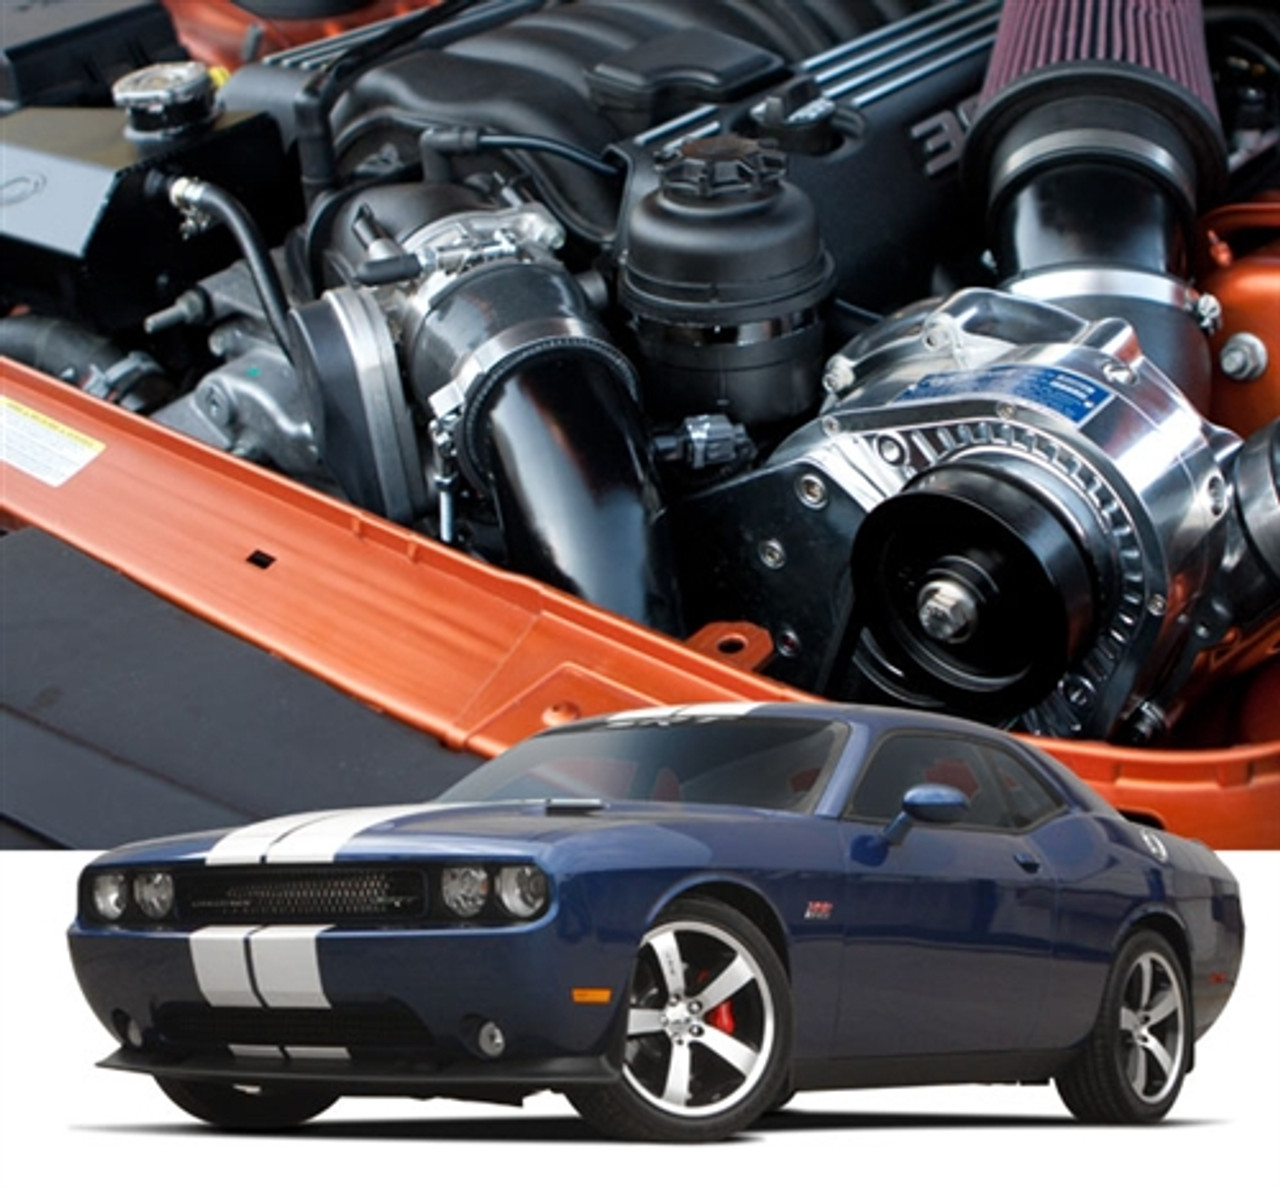 Procharger Ho Complete Intercooled Supercharger Kit W Tuning 2011 2014 5 7l Dodge Charger Challenger R T 1df414